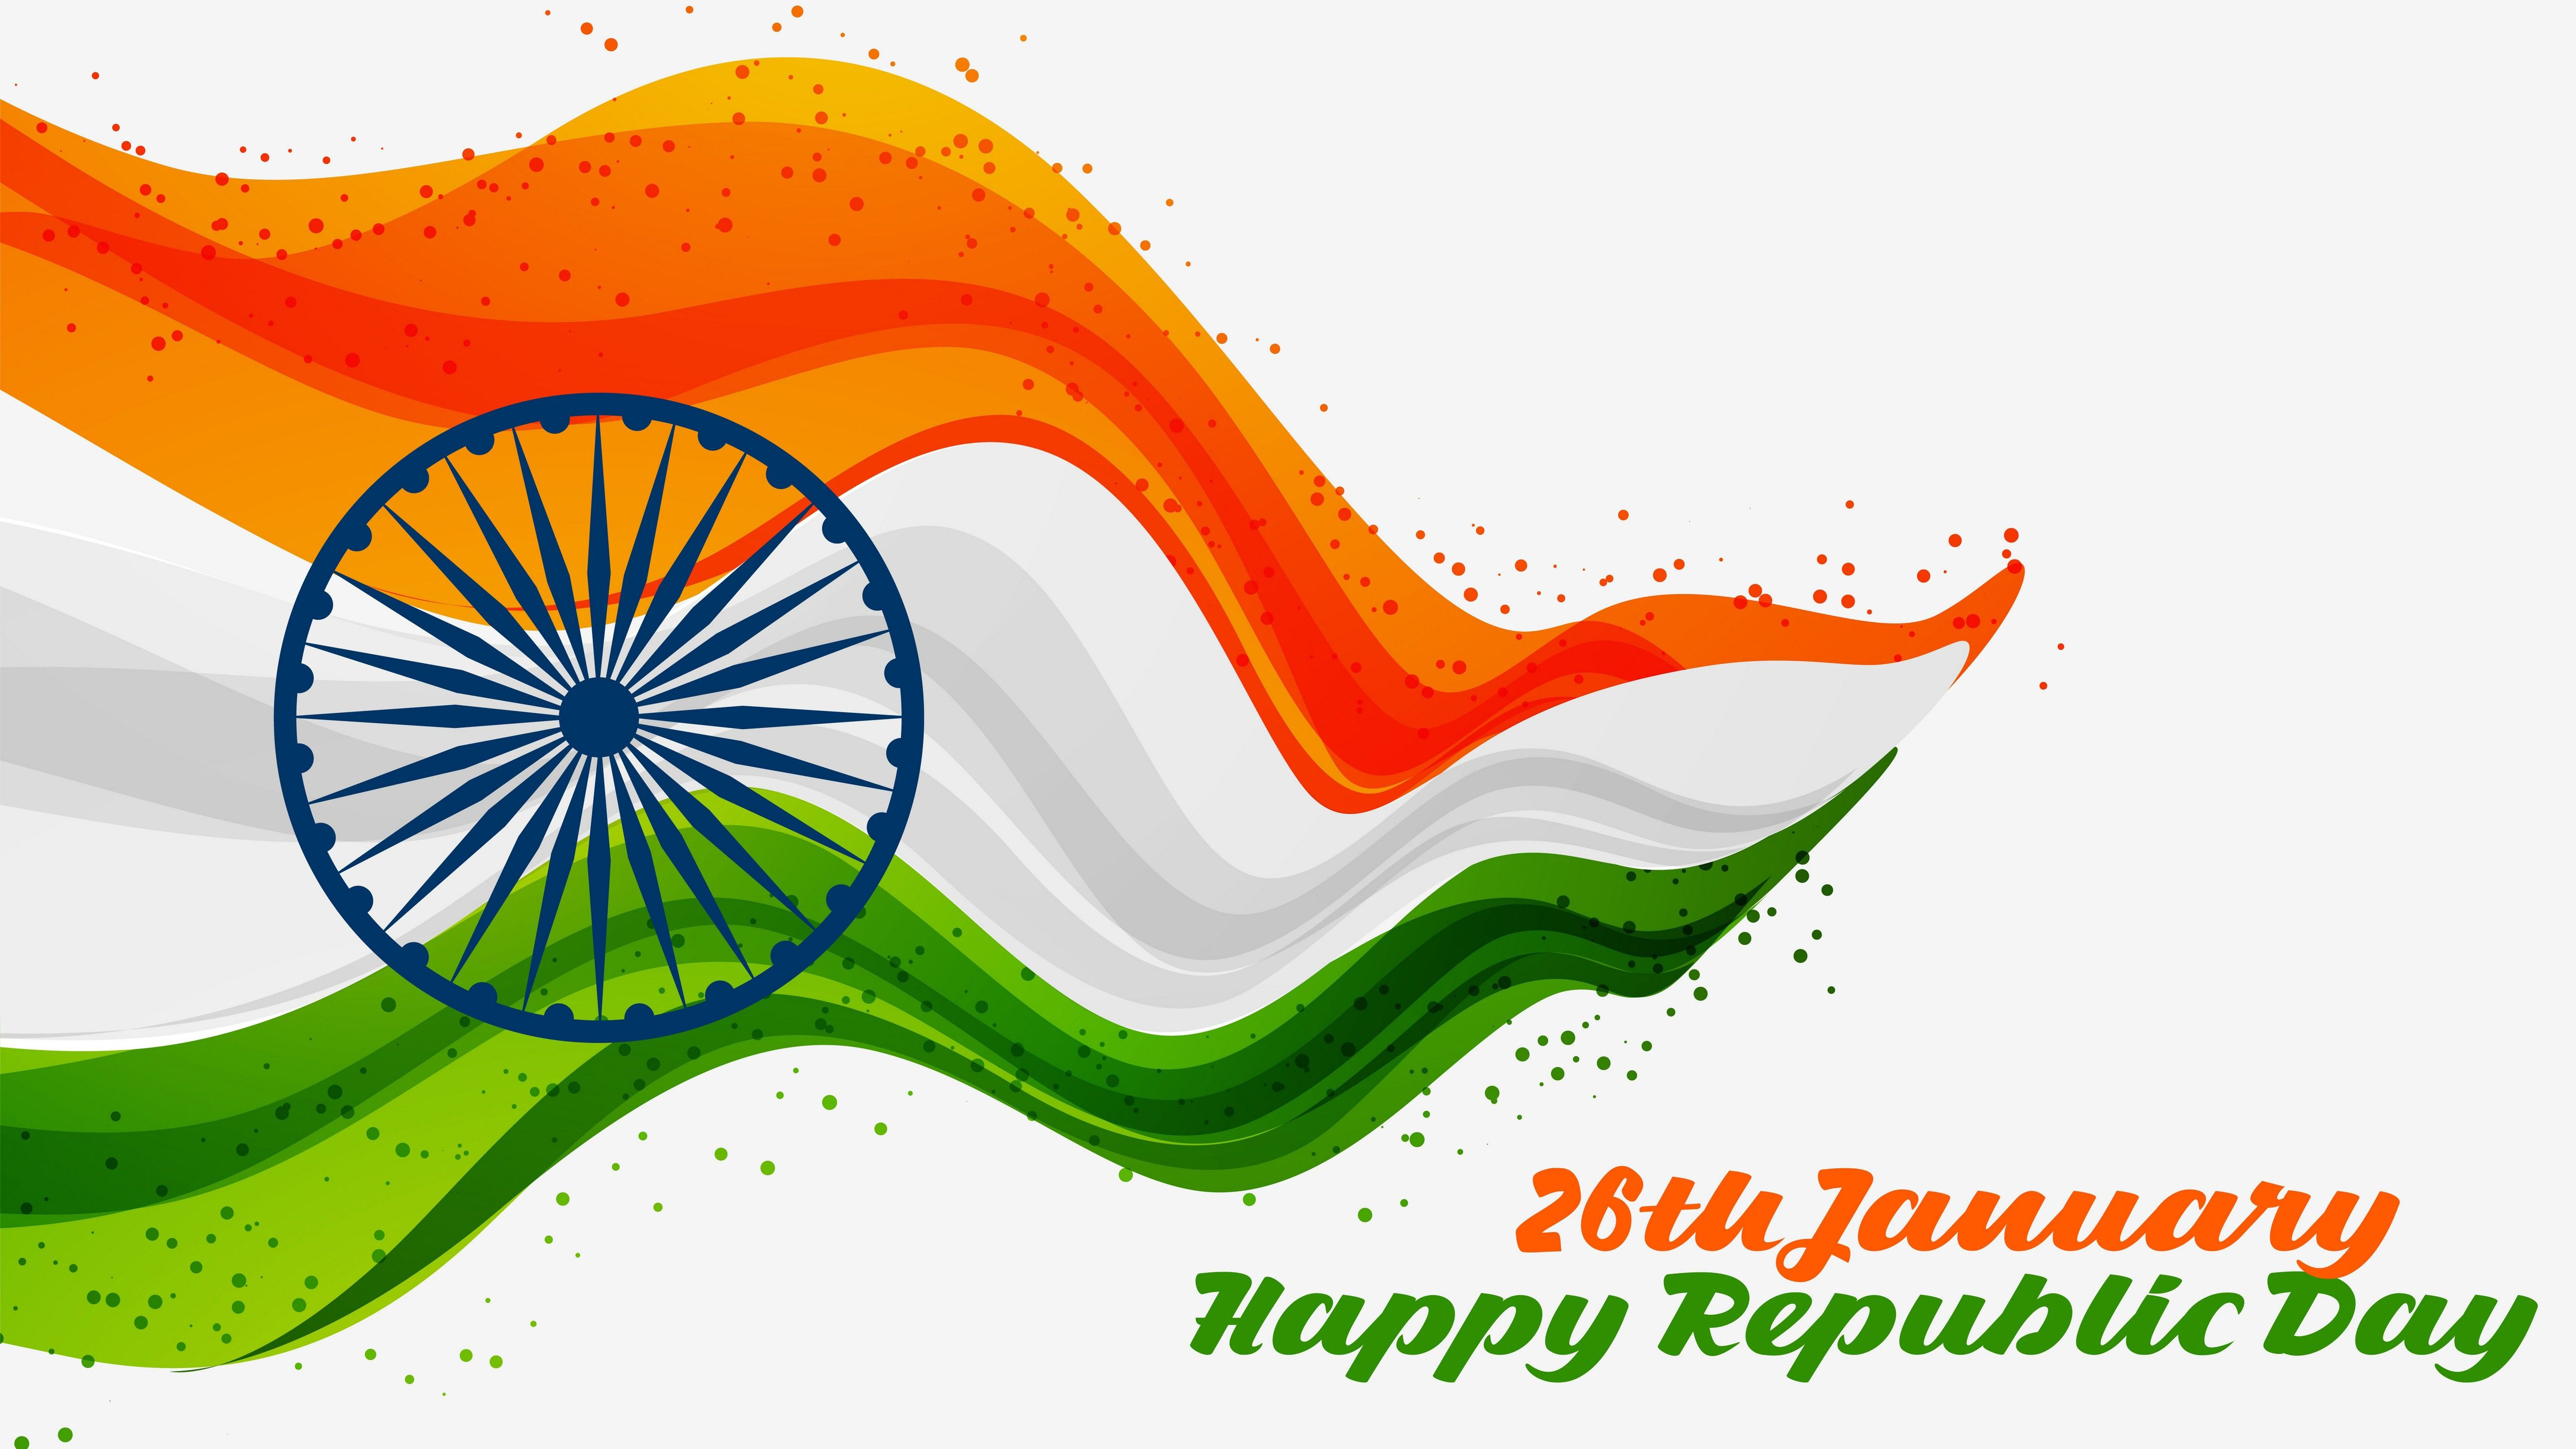 Get information about Republic Day celebration in India